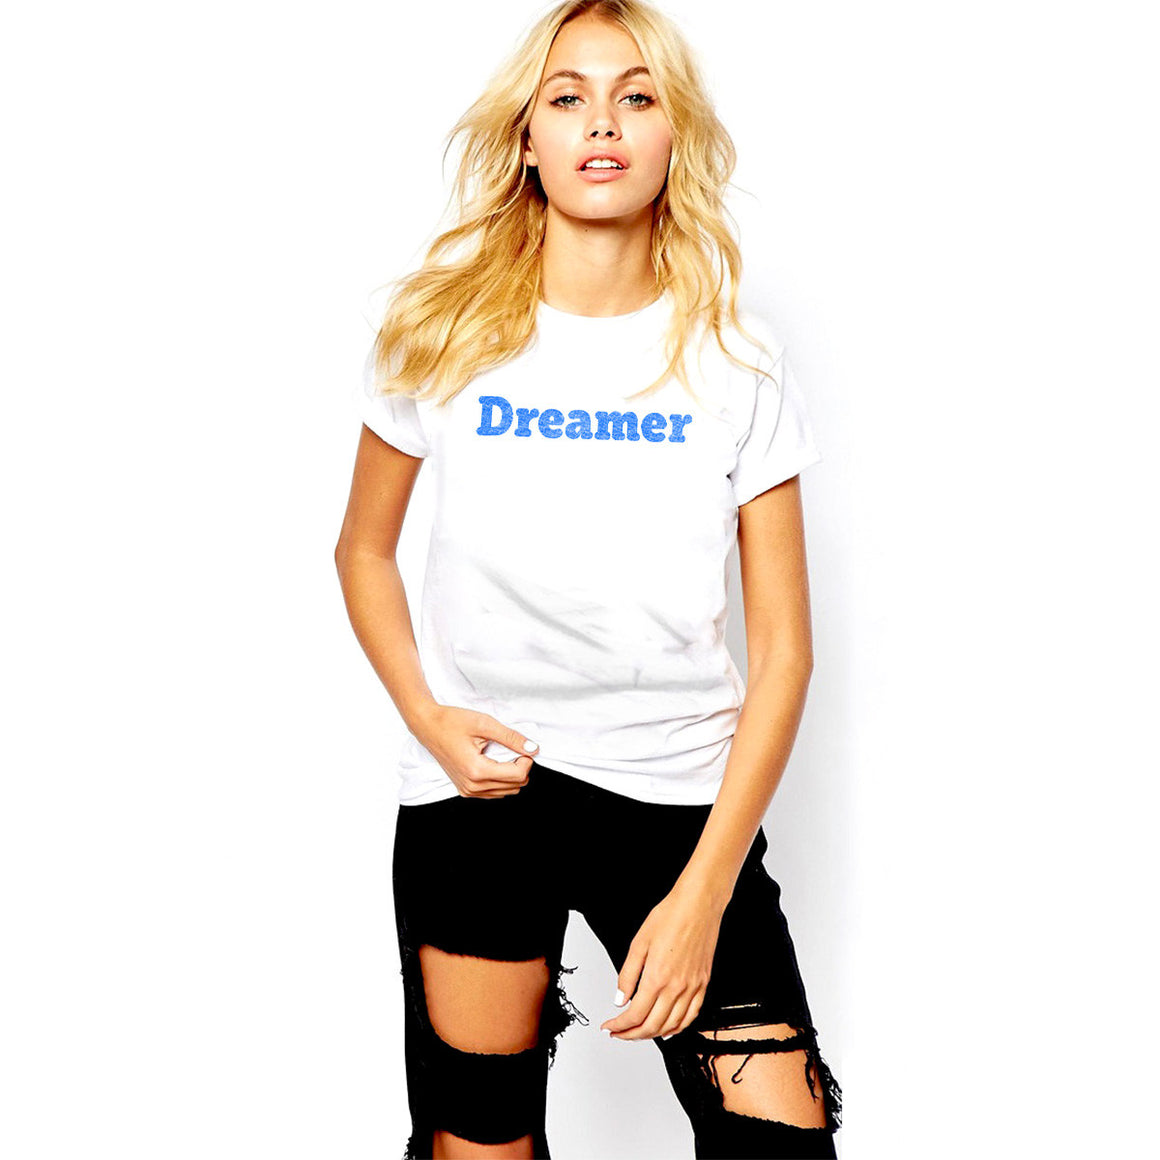 Dreamer Women's Crew Neck T-Shirt